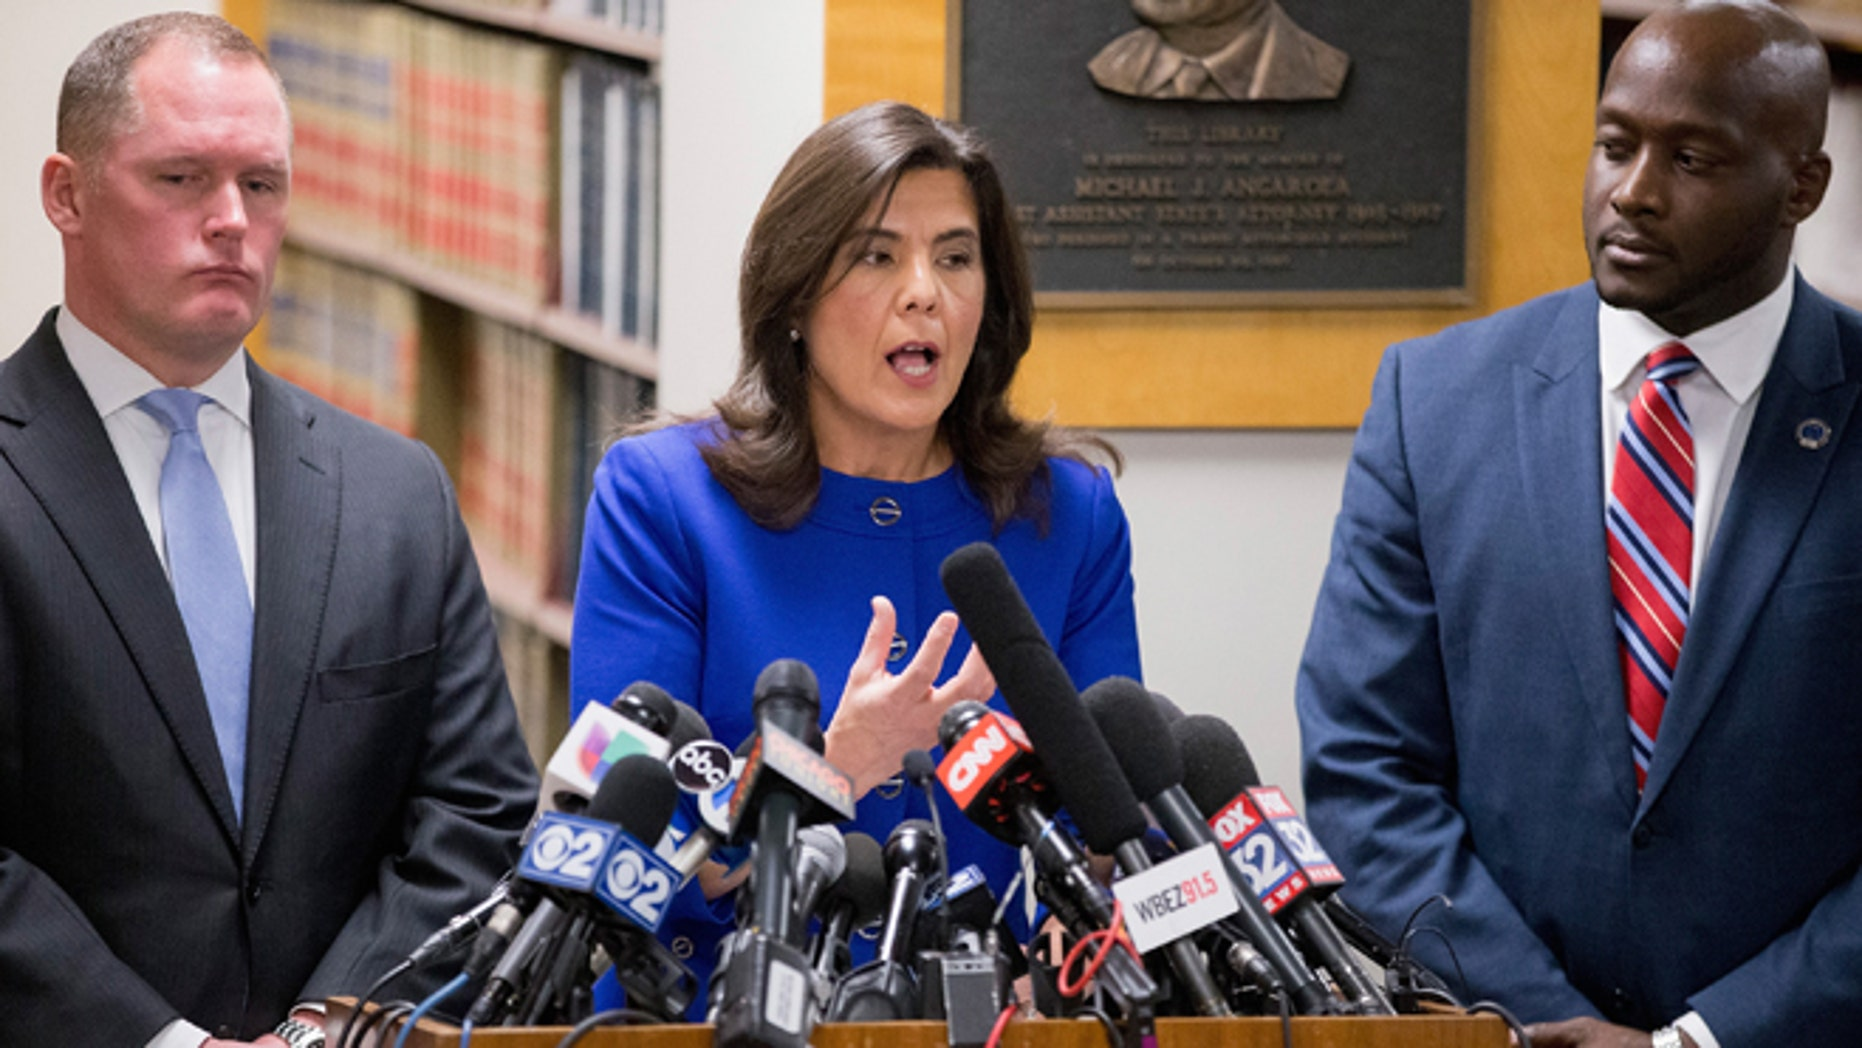 CHICAGO, IL - NOVEMBER 24:  Cook County State's Attorney Anita Alvarez speaks to the media about Chicago Police officer Jason Van Dyke following a bond hearing for Van Dyke at the Leighton Criminal Courts Building on November 24, 2015 in Chicago, Illinois. Van Dyke has been charged with first degree murder for shooting 17-year-old Laquan McDonald 16 times on October 20, 2014 after responding to a call of a knife wielding man who had threatened the complainant and was attempting to break into vehicles in a trucking yard.  (Photo by Scott Olson/Getty Images)